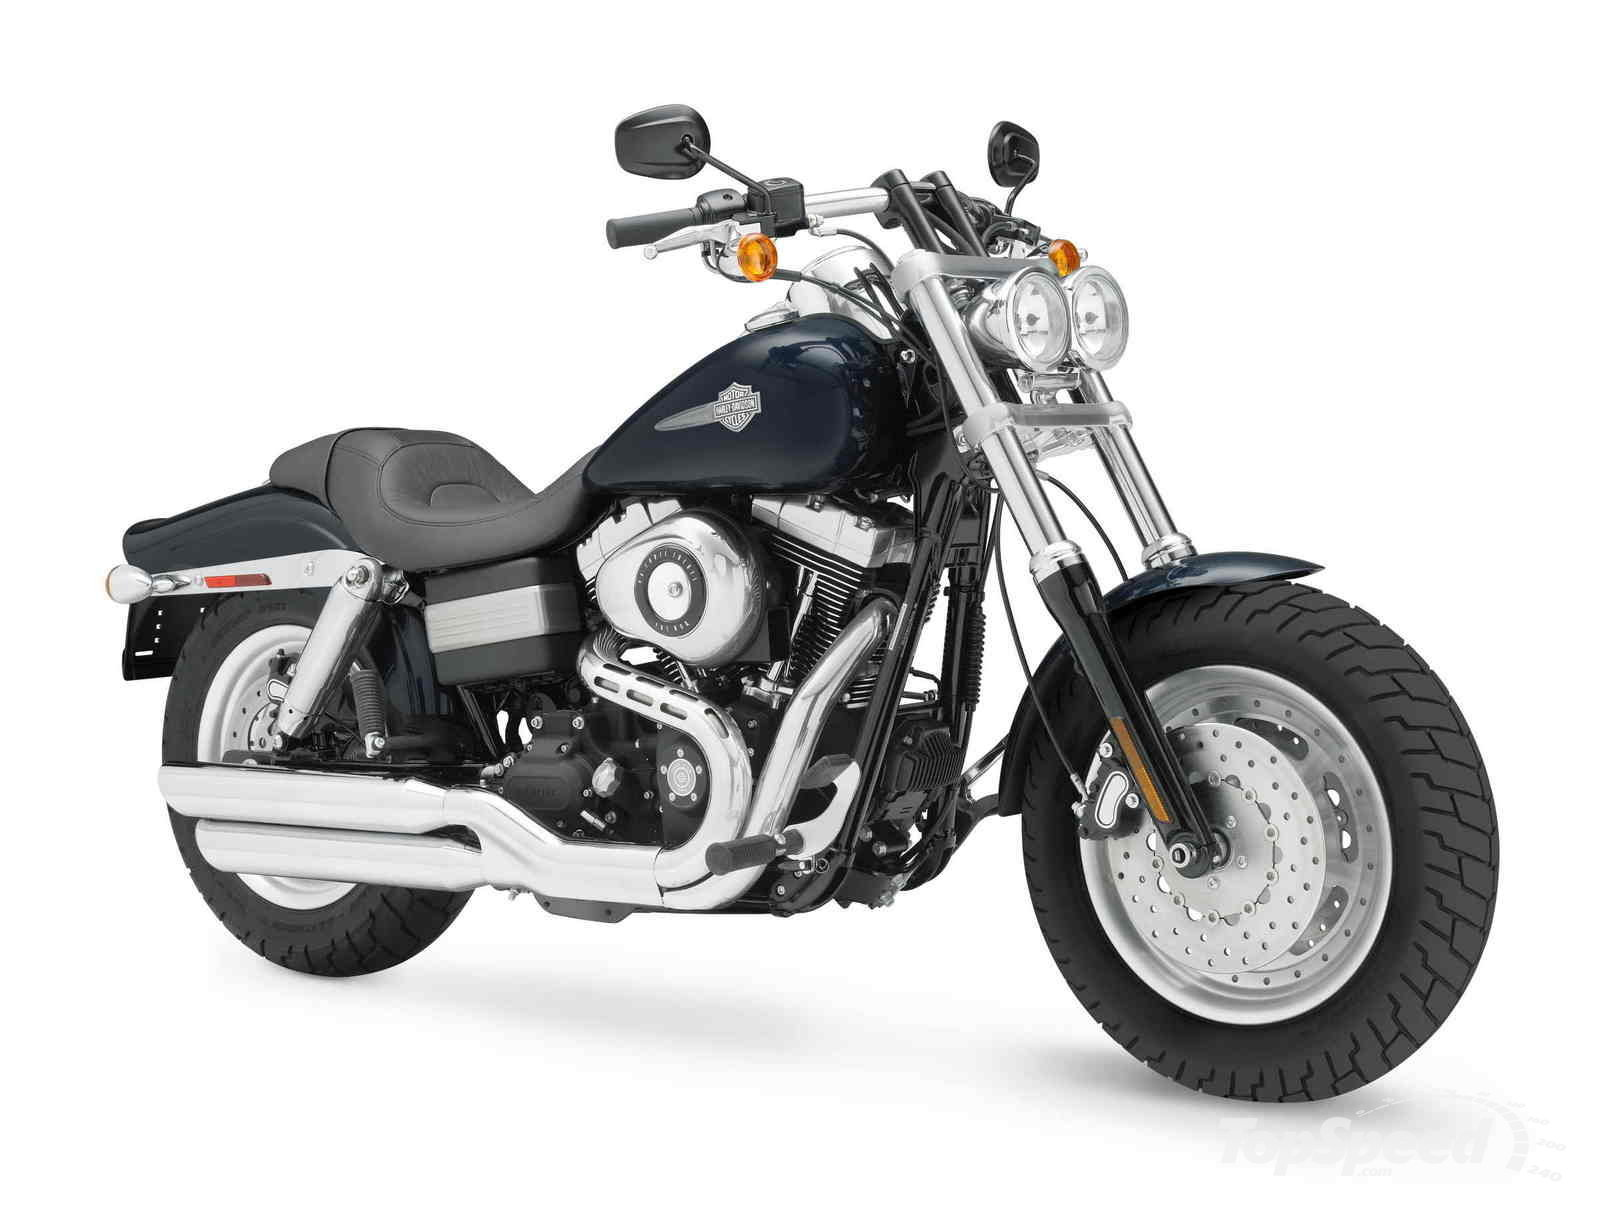 motorcycle race harley davidson fat bob to be released in india. Black Bedroom Furniture Sets. Home Design Ideas